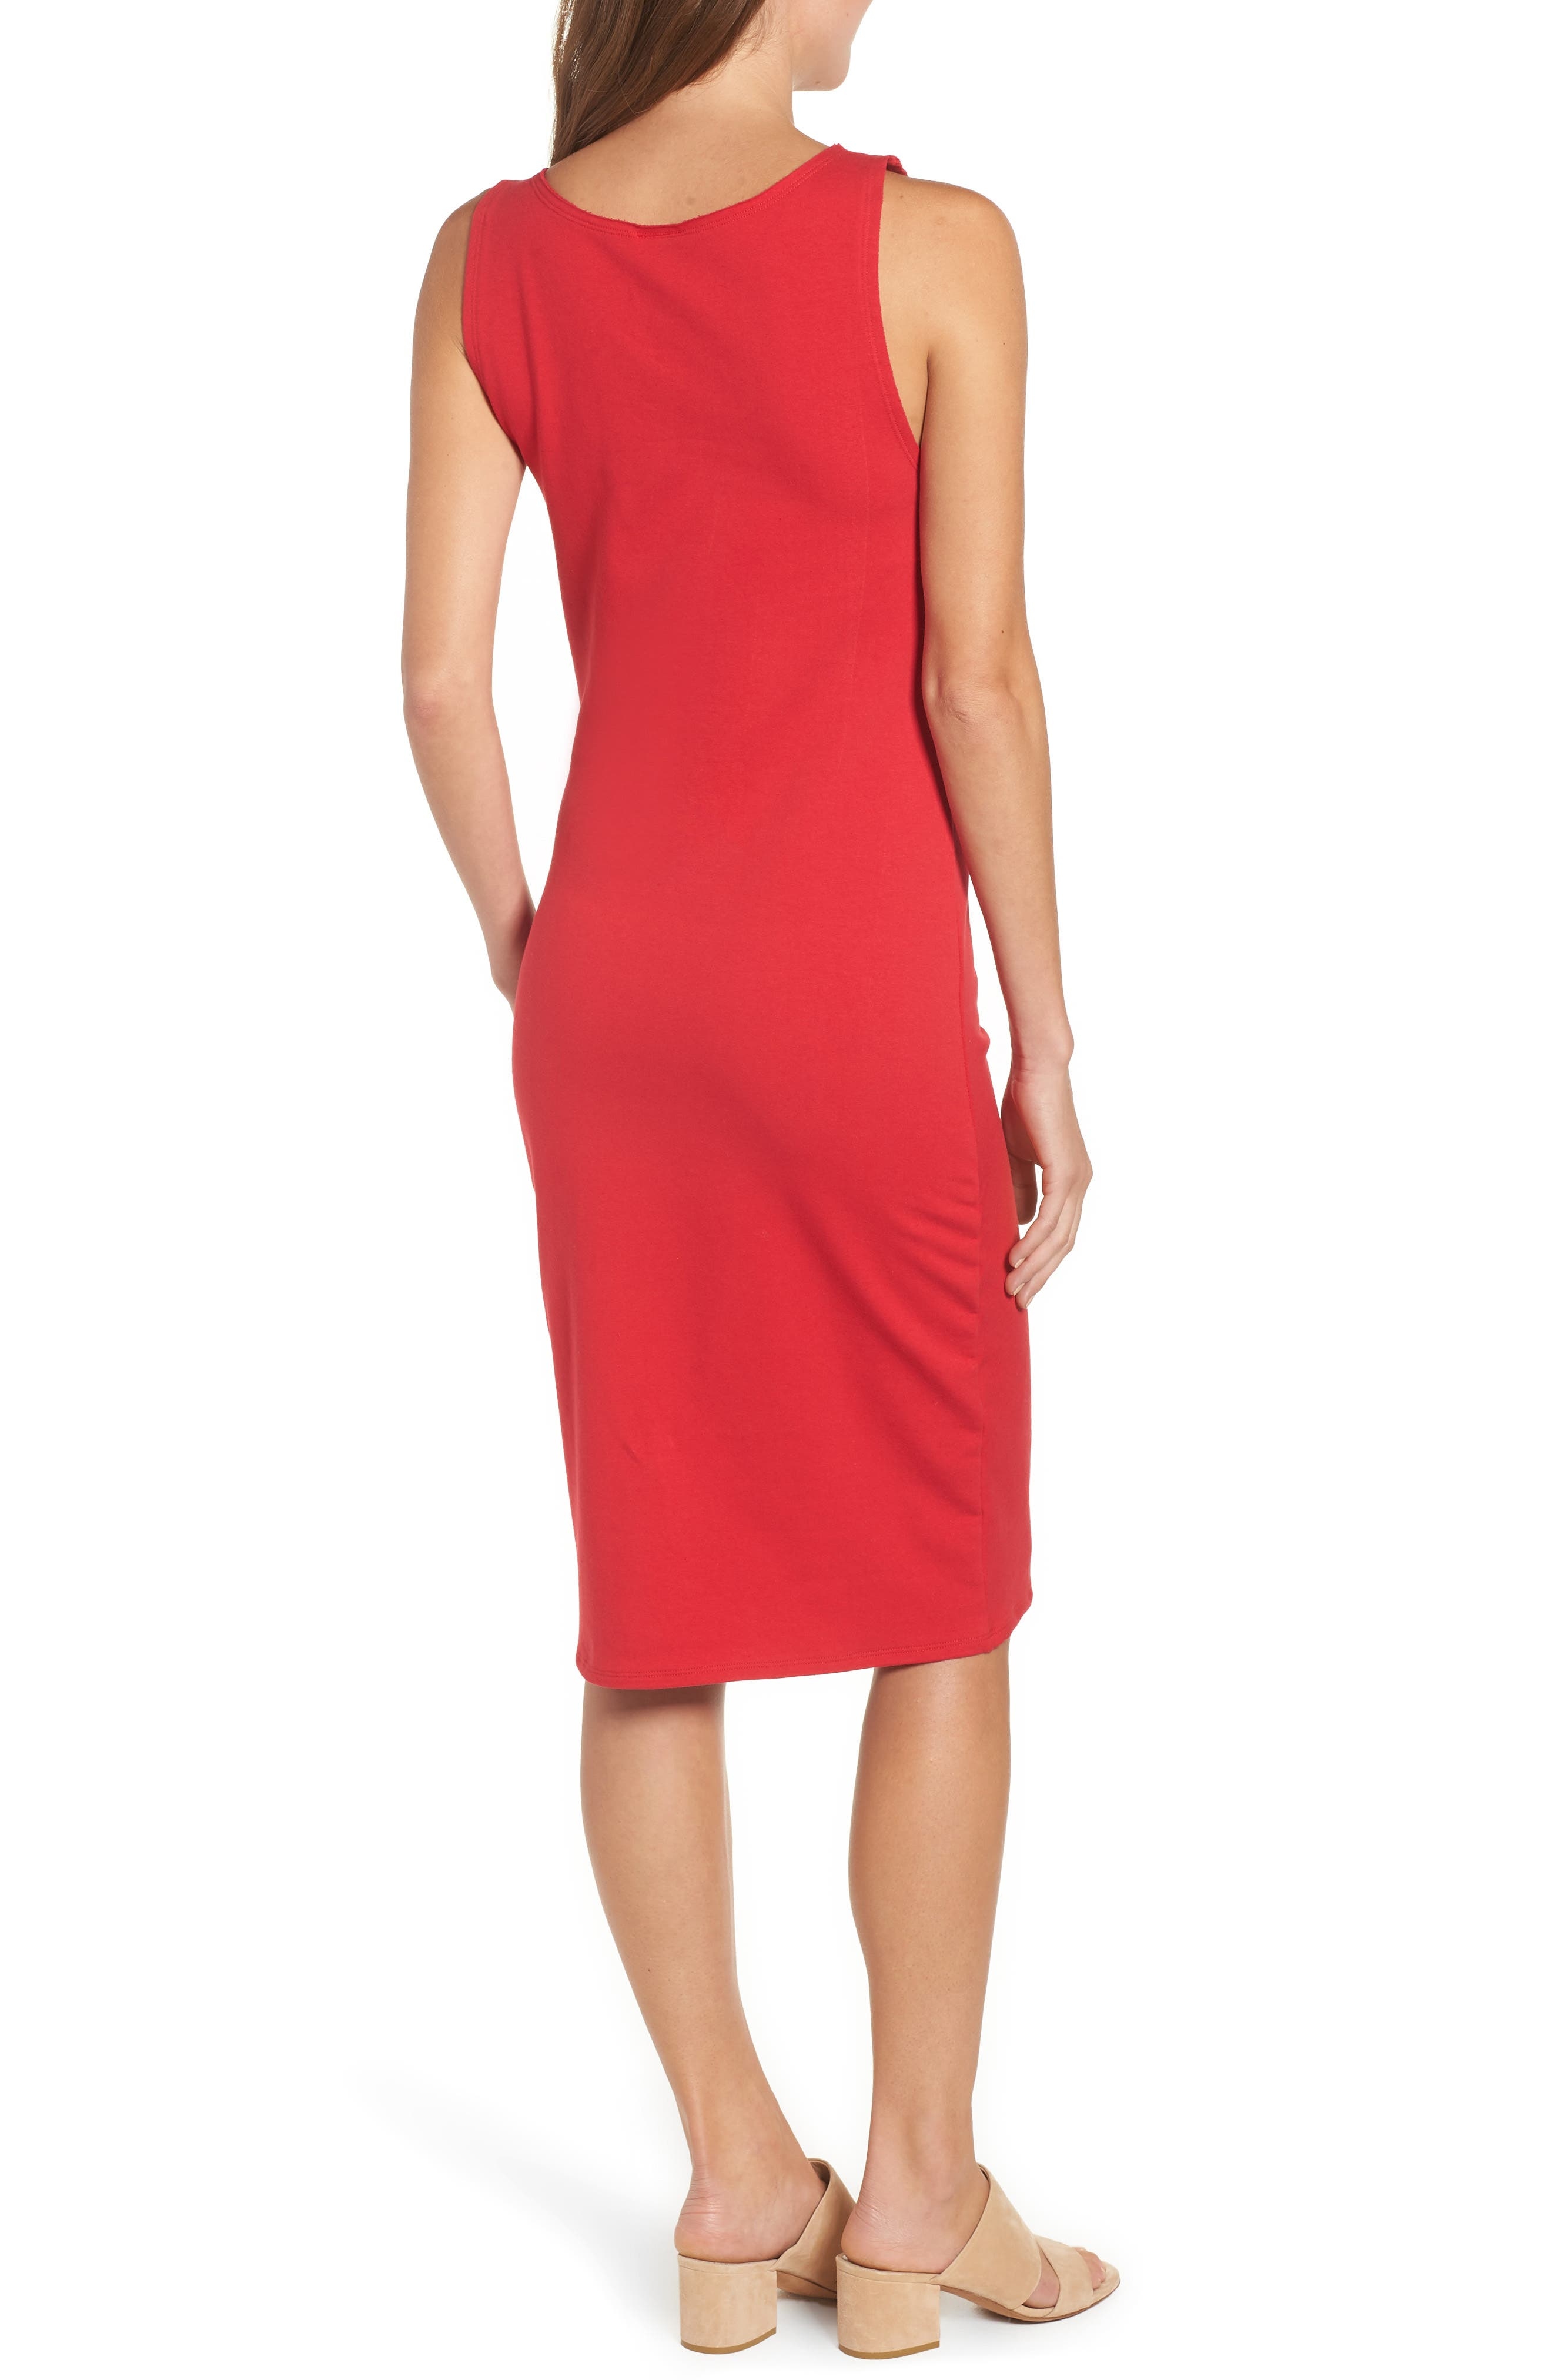 French Terry Ruffle Front Dress,                             Alternate thumbnail 2, color,                             Red Tomato